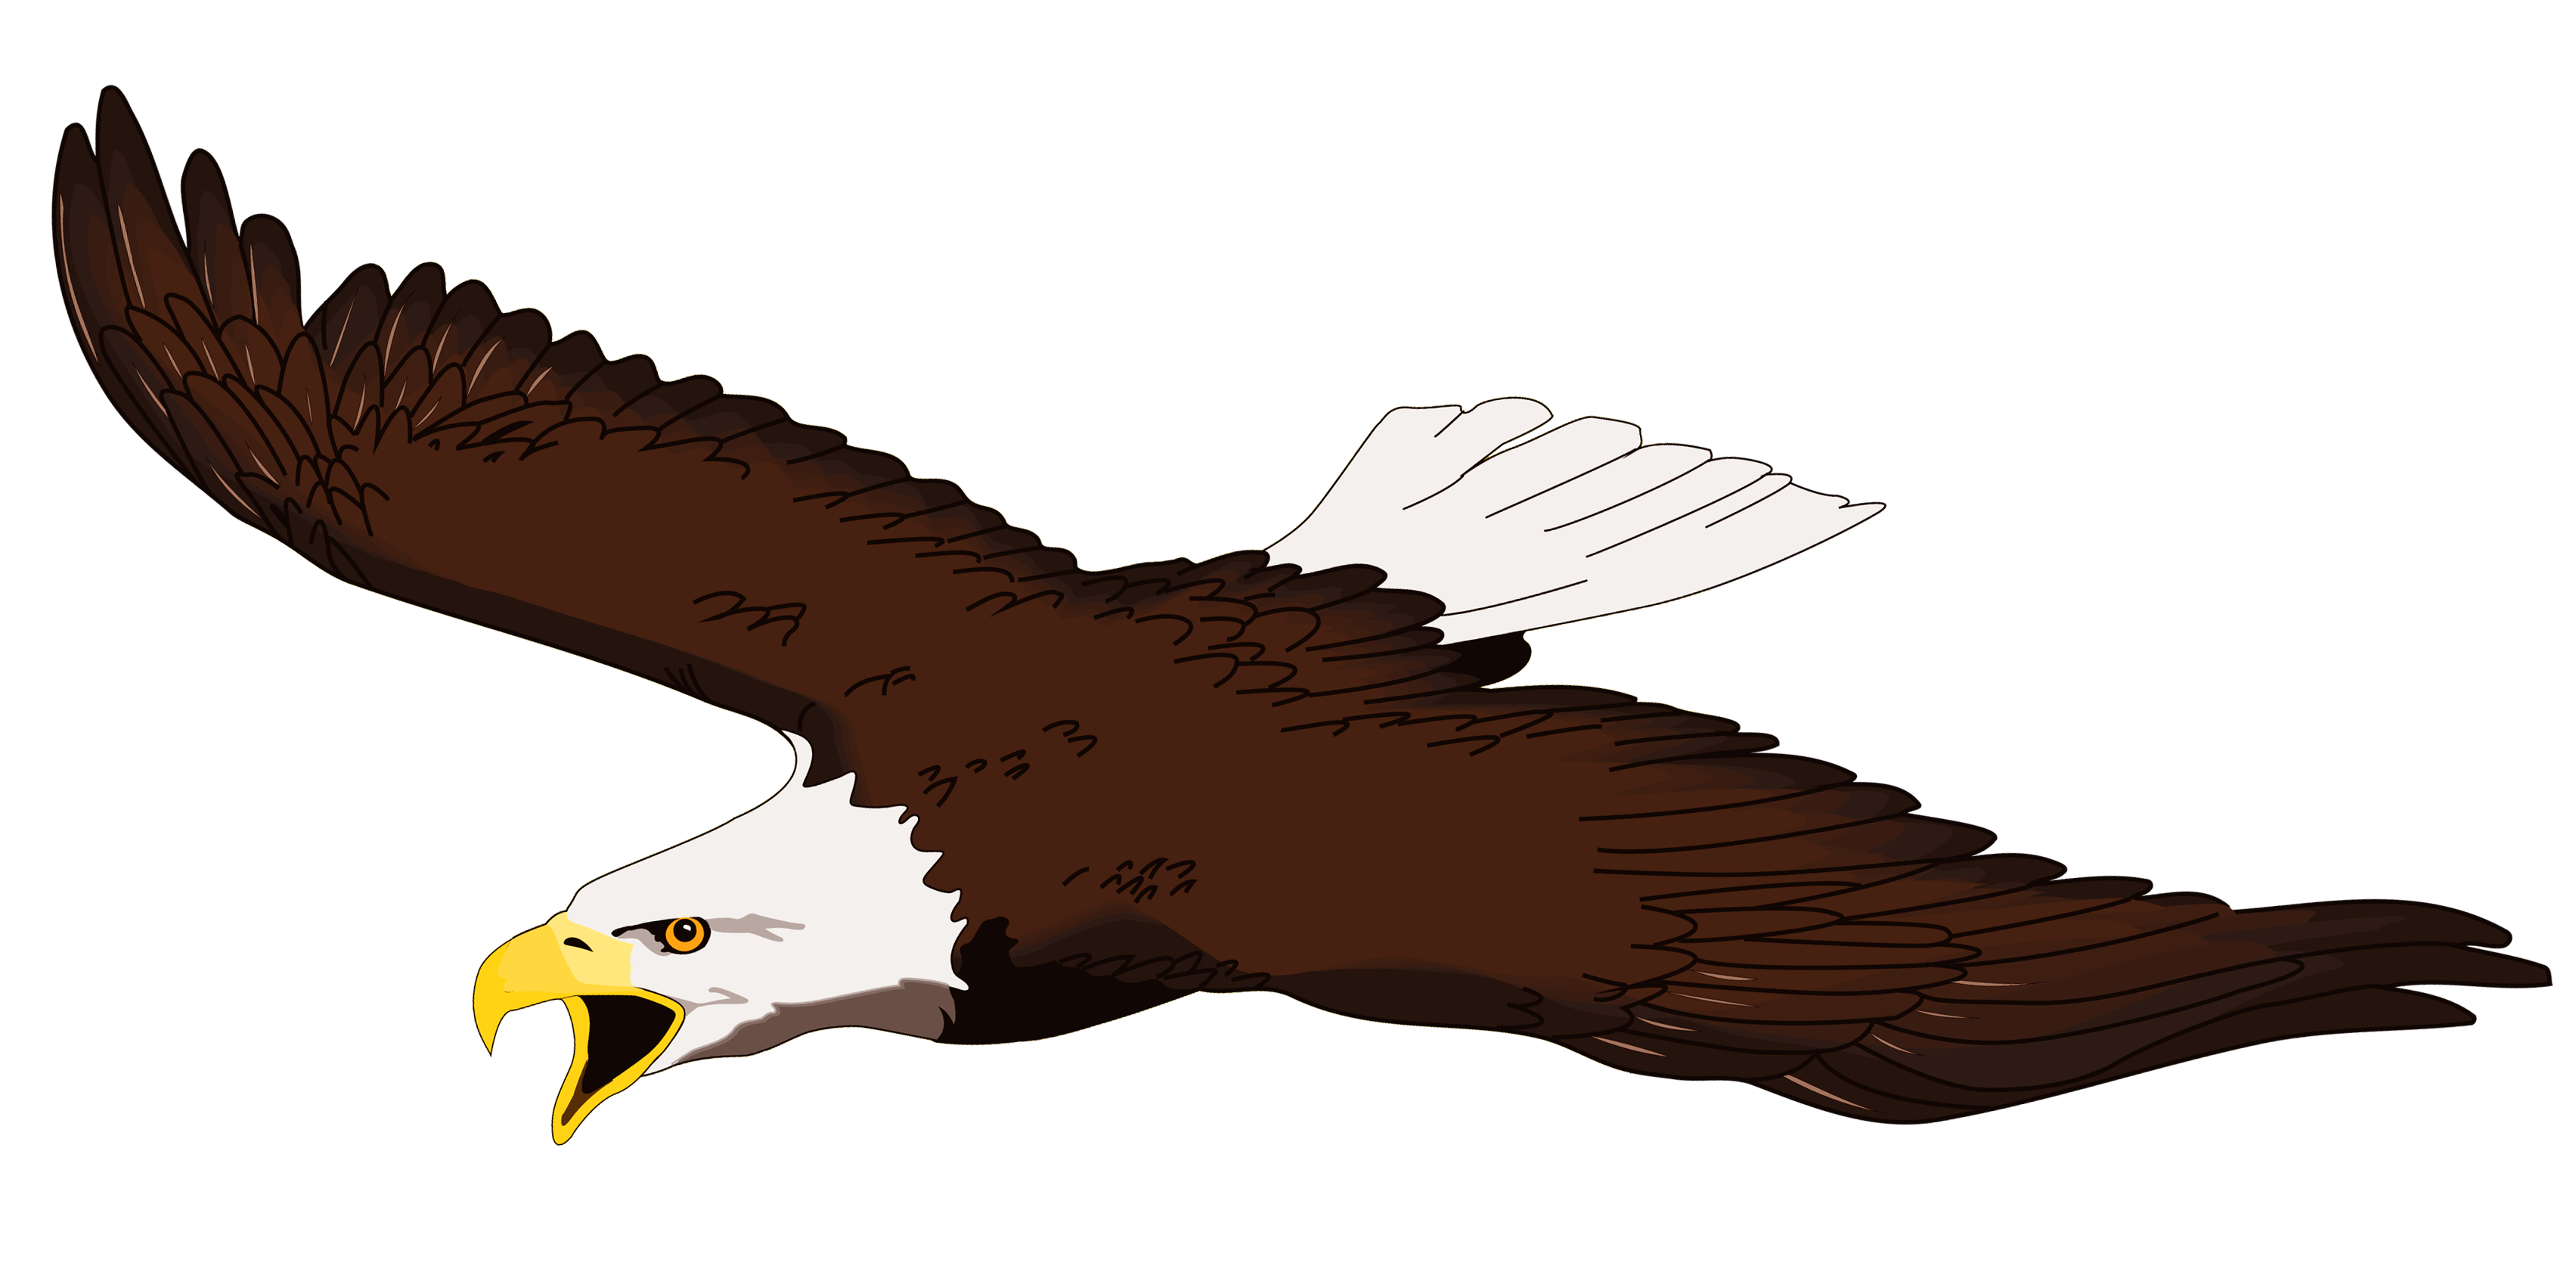 Eagle clipart. Transparent png gallery yopriceville